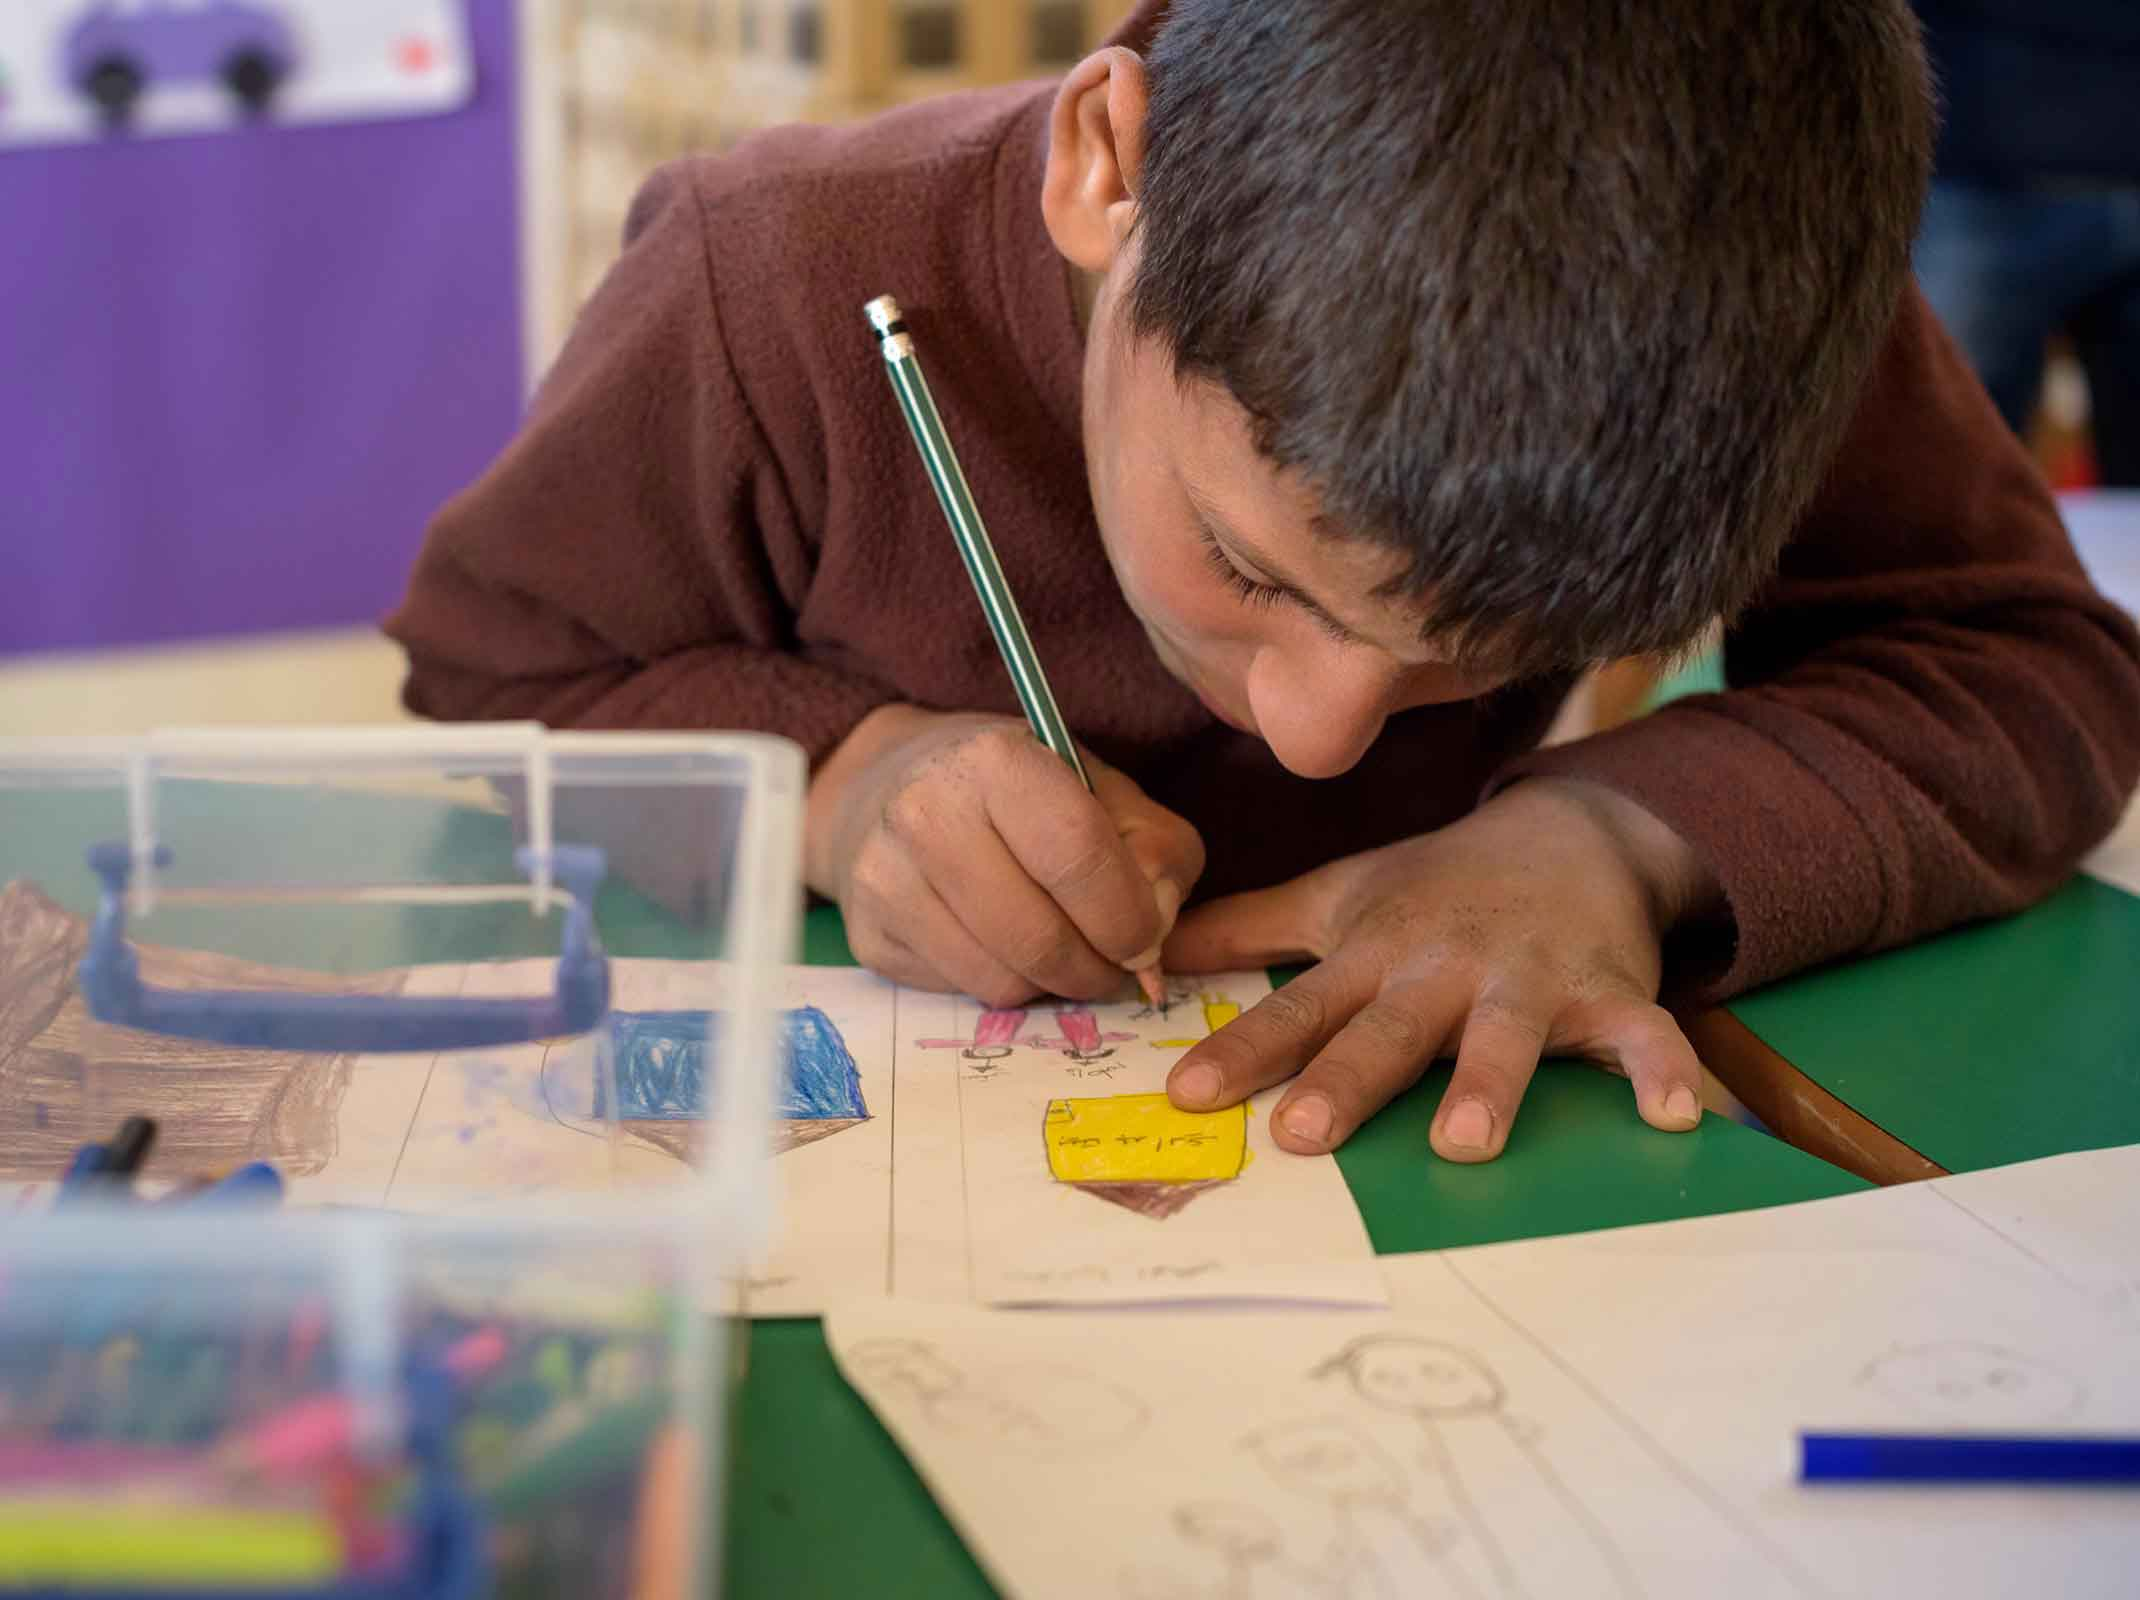 Syrian refugee children use art to express their feelings.